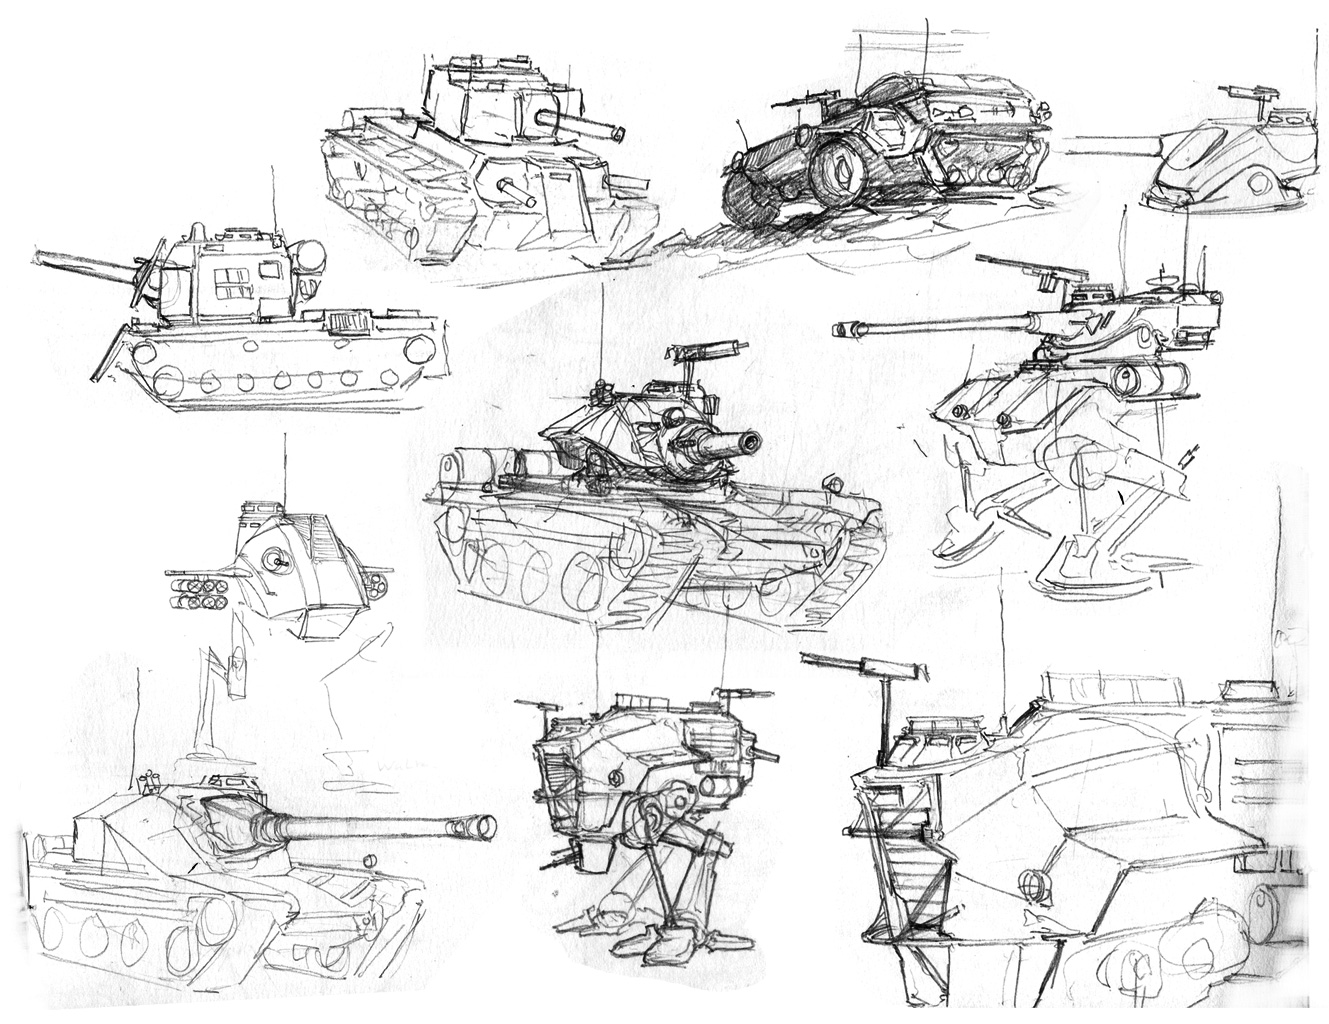 Tank sketches by Pyrosity